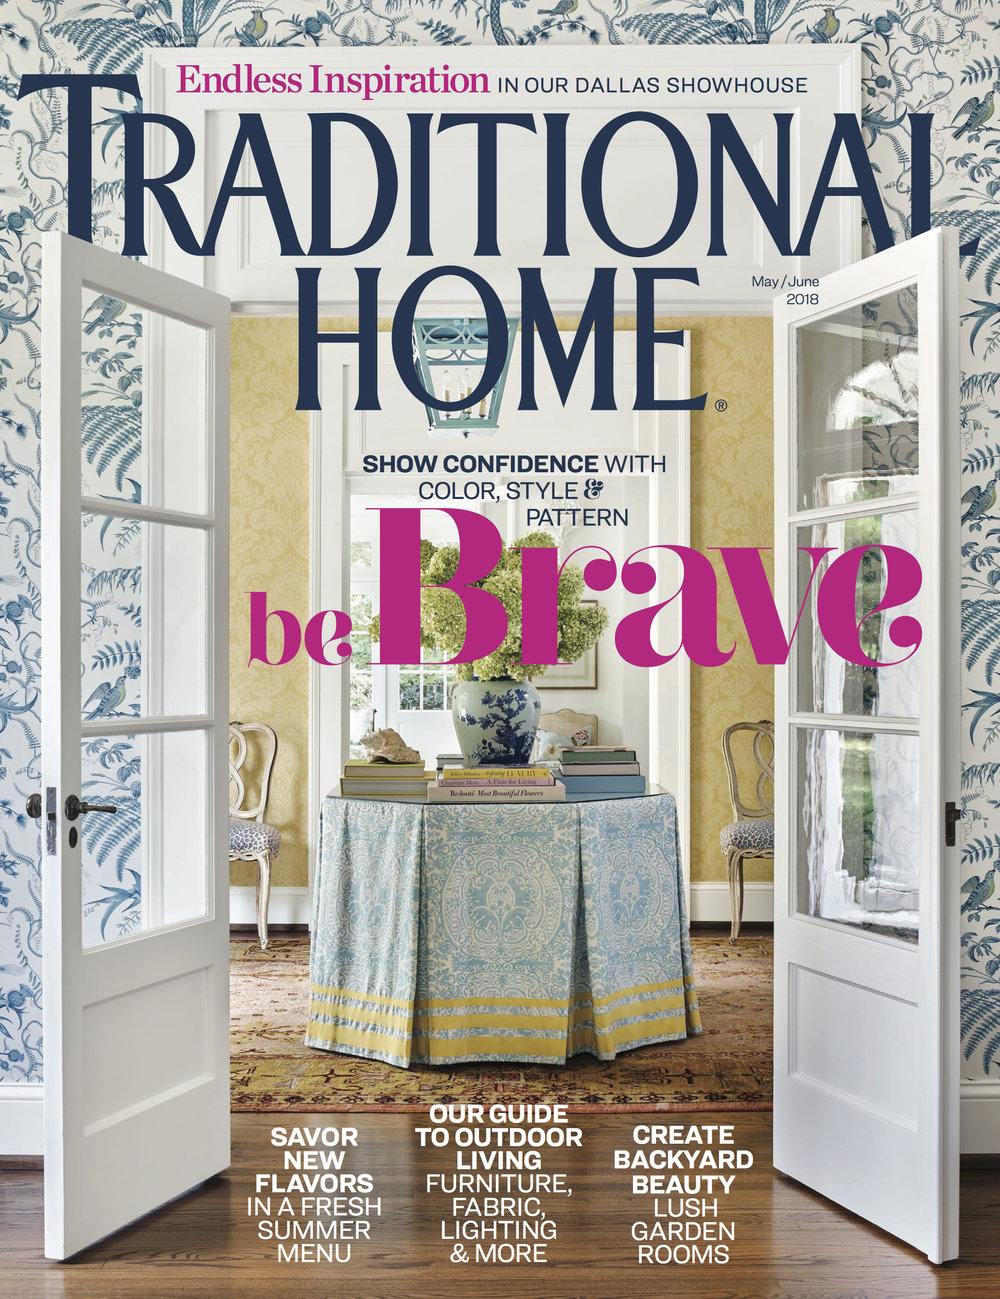 TraditionalHome_MayJune18_Cover.jpg